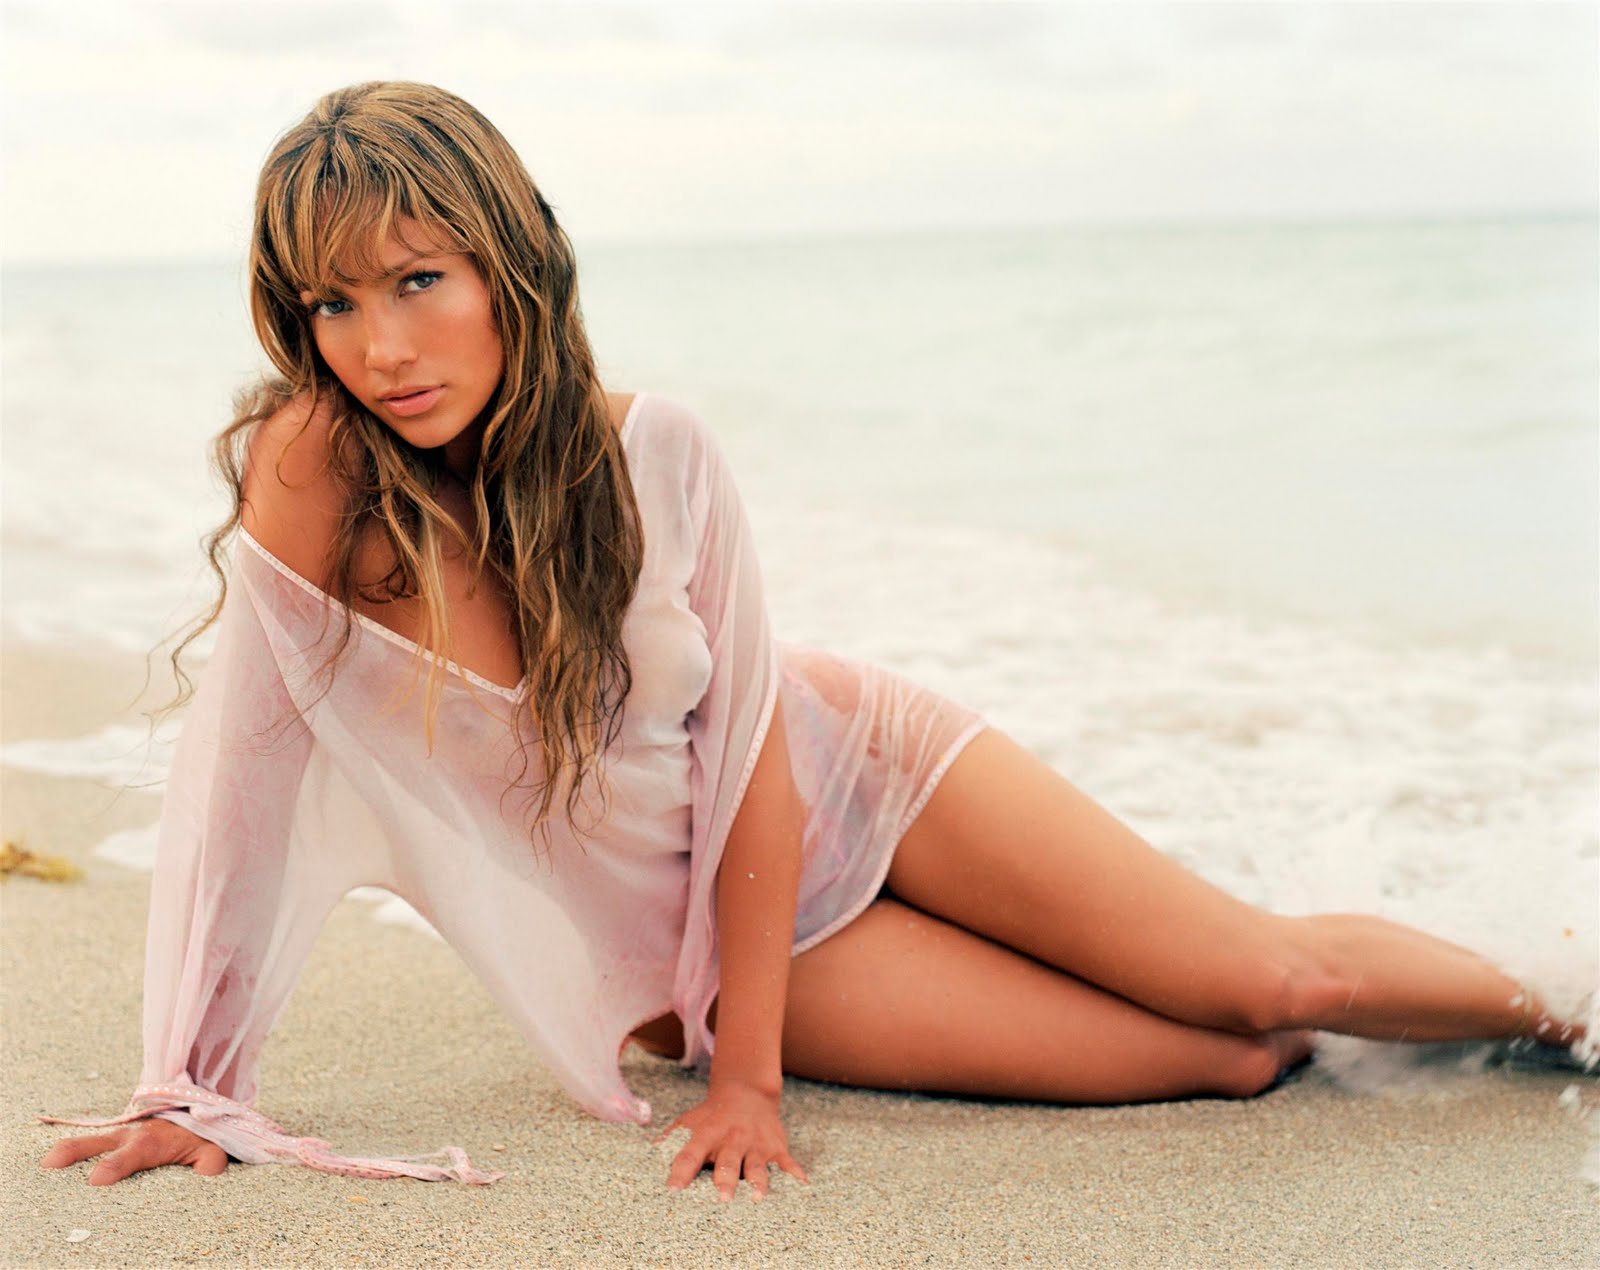 blogspotcom jennifer lopez - photo #6